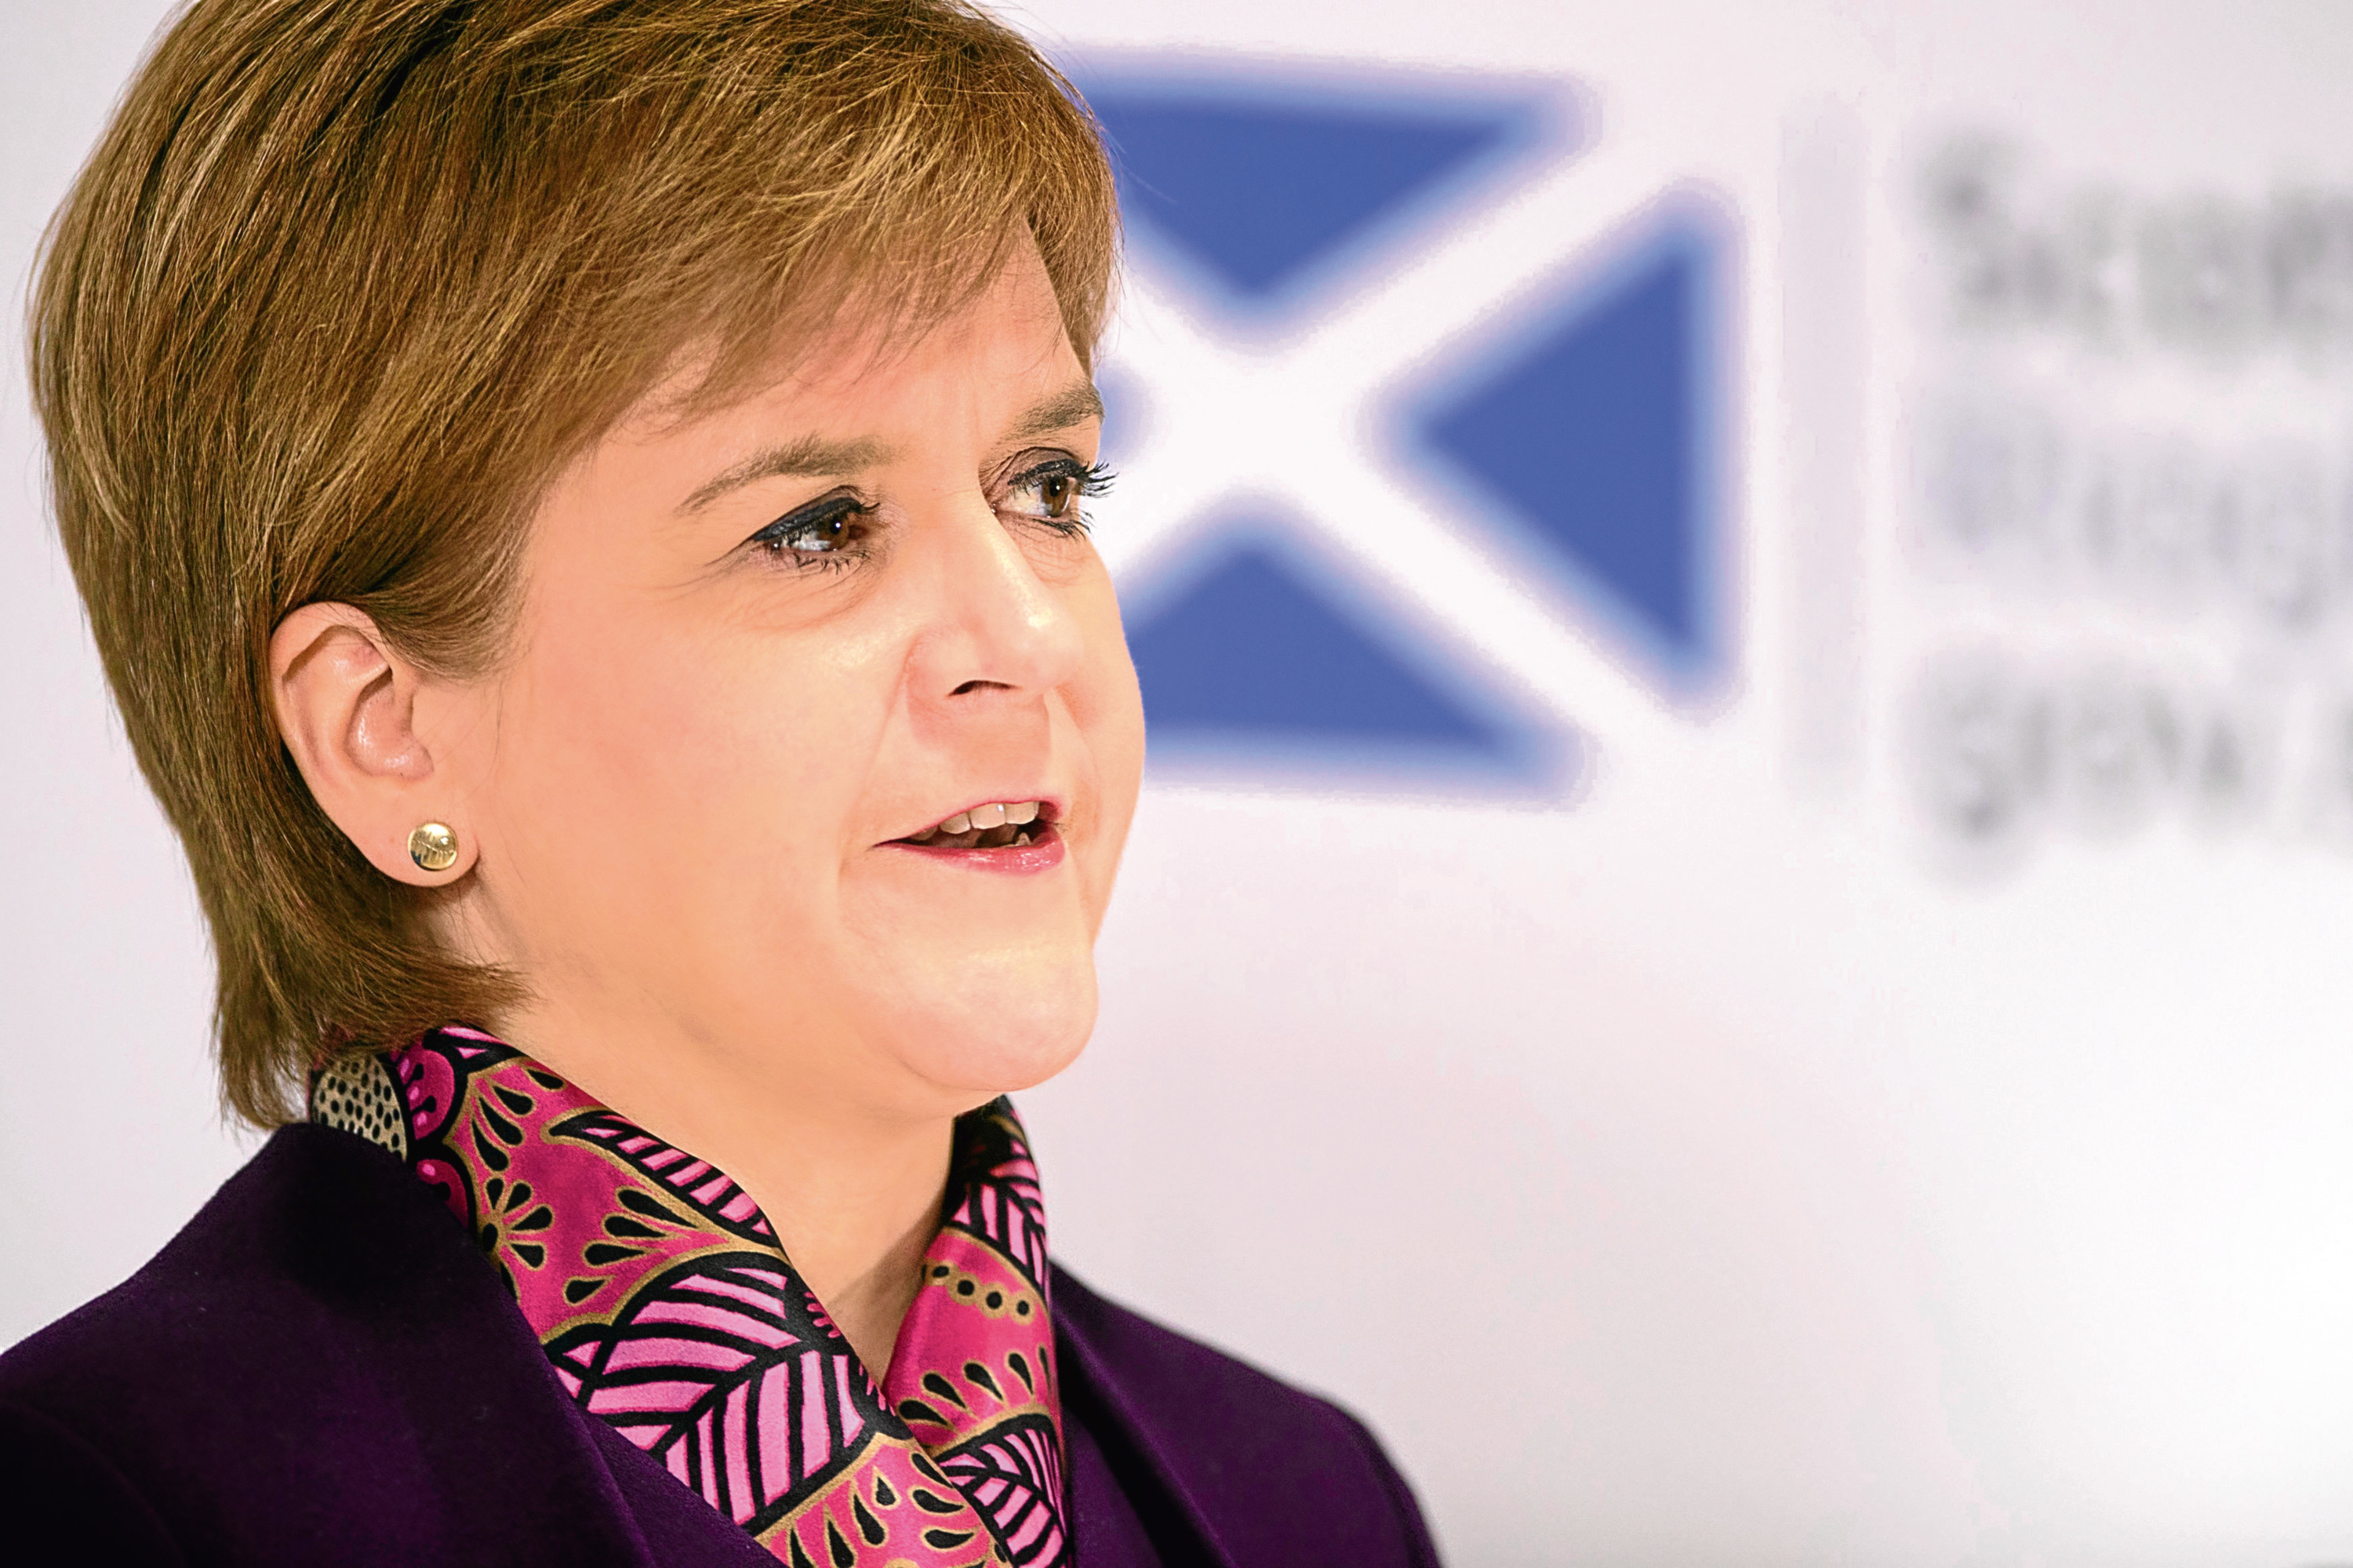 First Minister Nicola Sturgeon speaking at the launch of an analysis paper on Scotland's future relationship with Europe, at the University of Edinburgh. PRESS ASSOCIATION Photo. Picture date: Monday January 15, 2018. See PA story POLITICS Scotland. Photo credit should read: John Linton/PA Wire